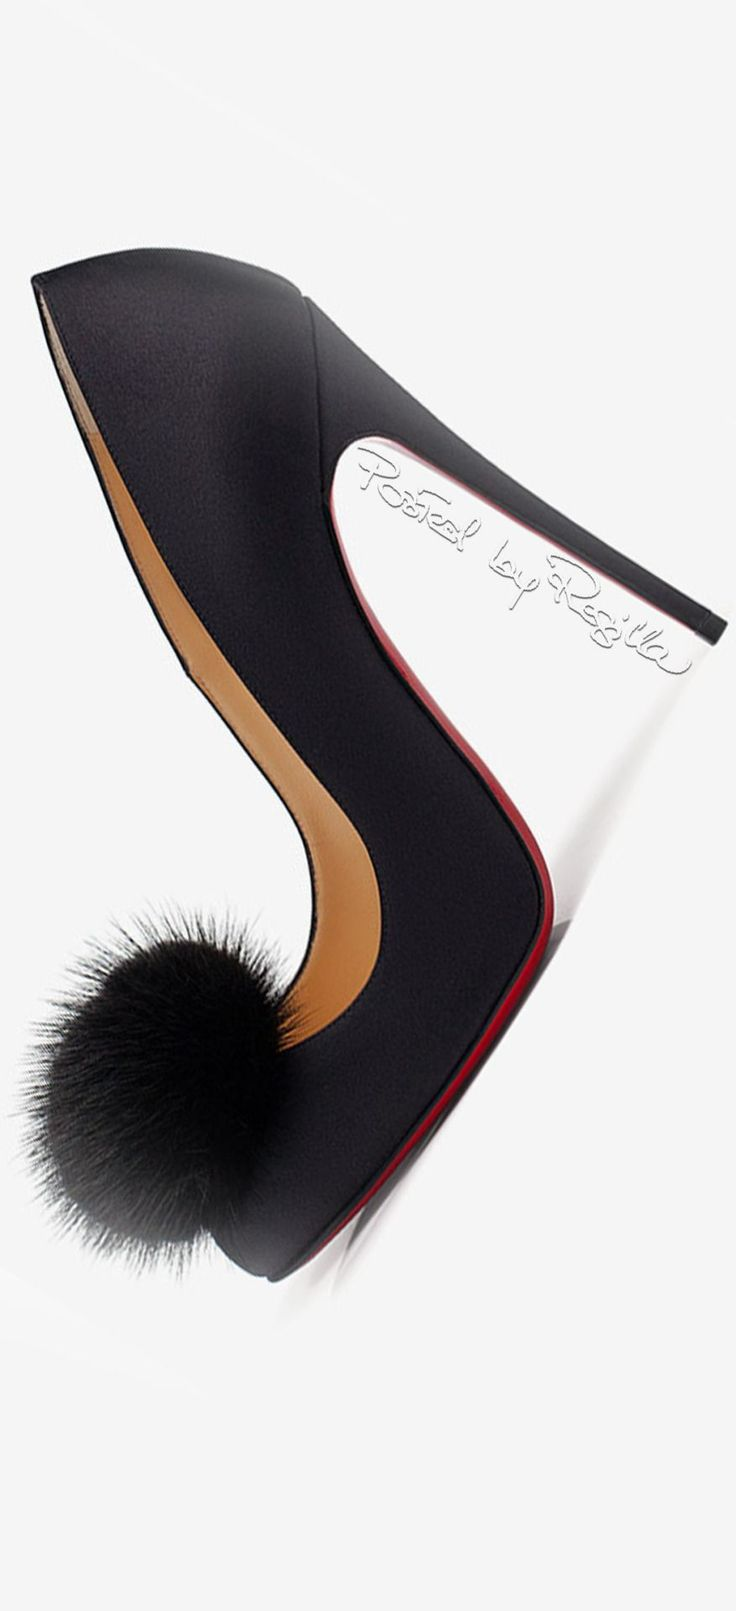 Black Christian Louboutin Red Bottoms High Heels with Ball of Fur on the Toe